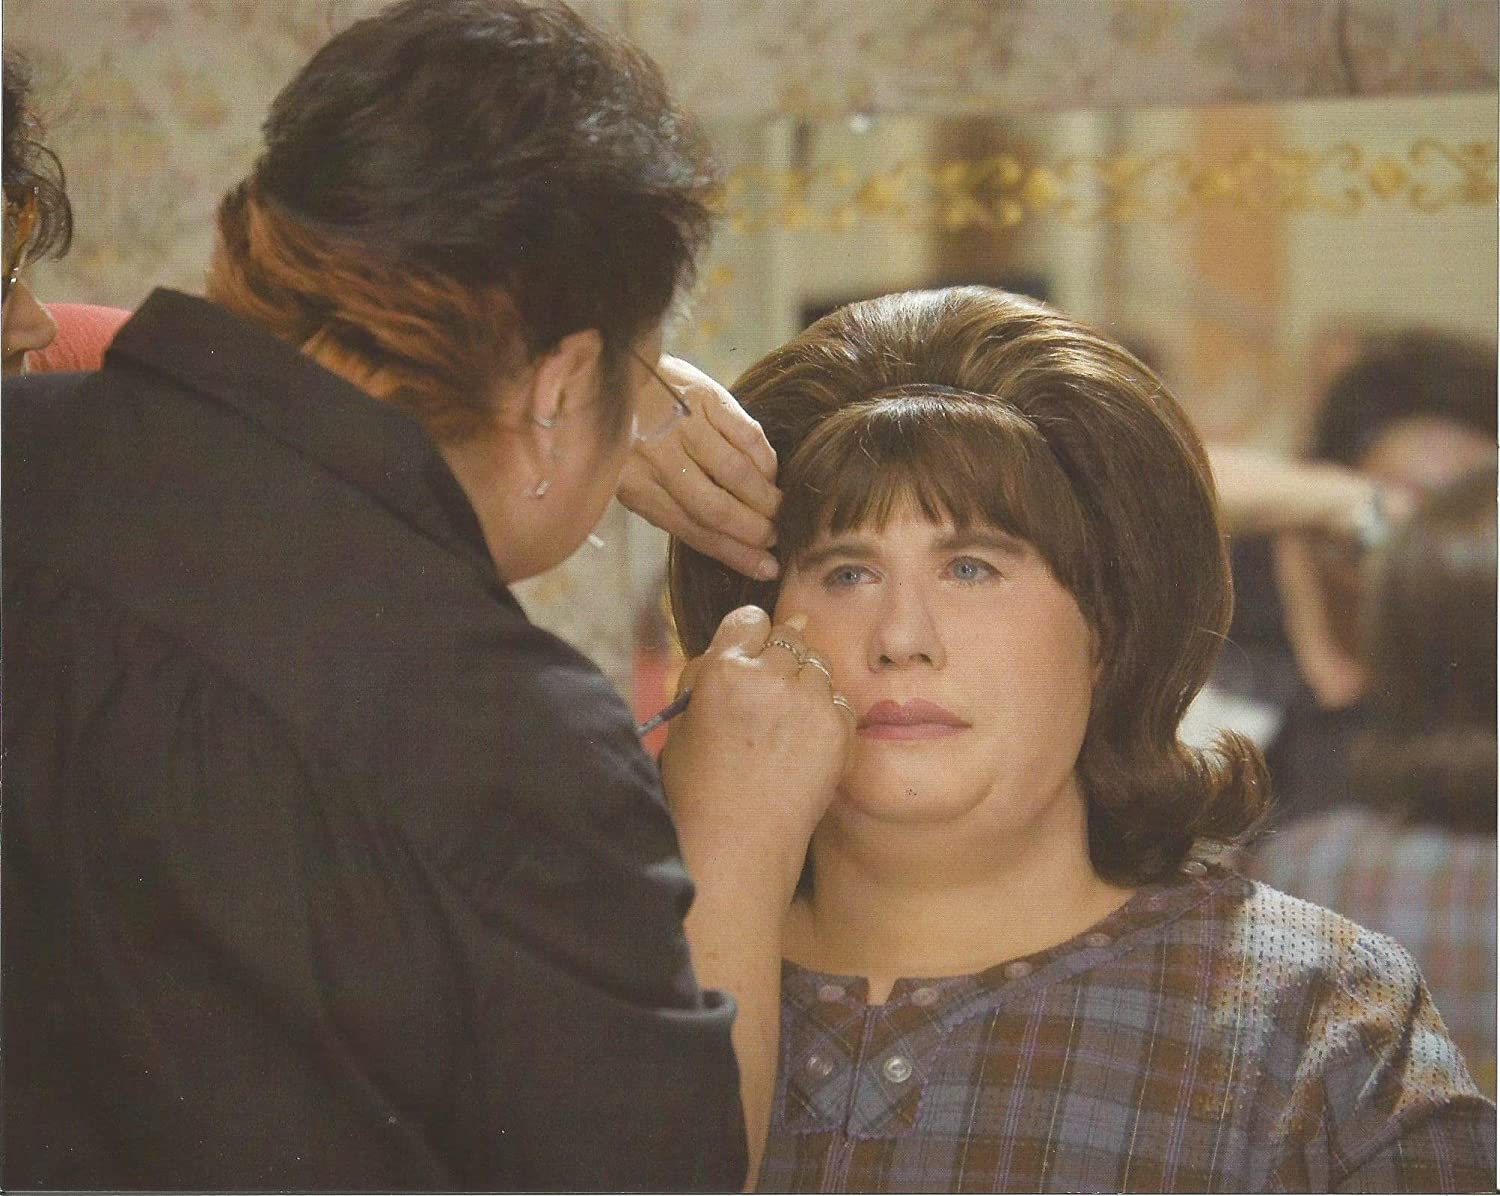 Hairspray John Travolta In Purple Dress With Make Up Artist 8 X 10 Production Photo 004 At Amazon S Entertainment Collectibles Store